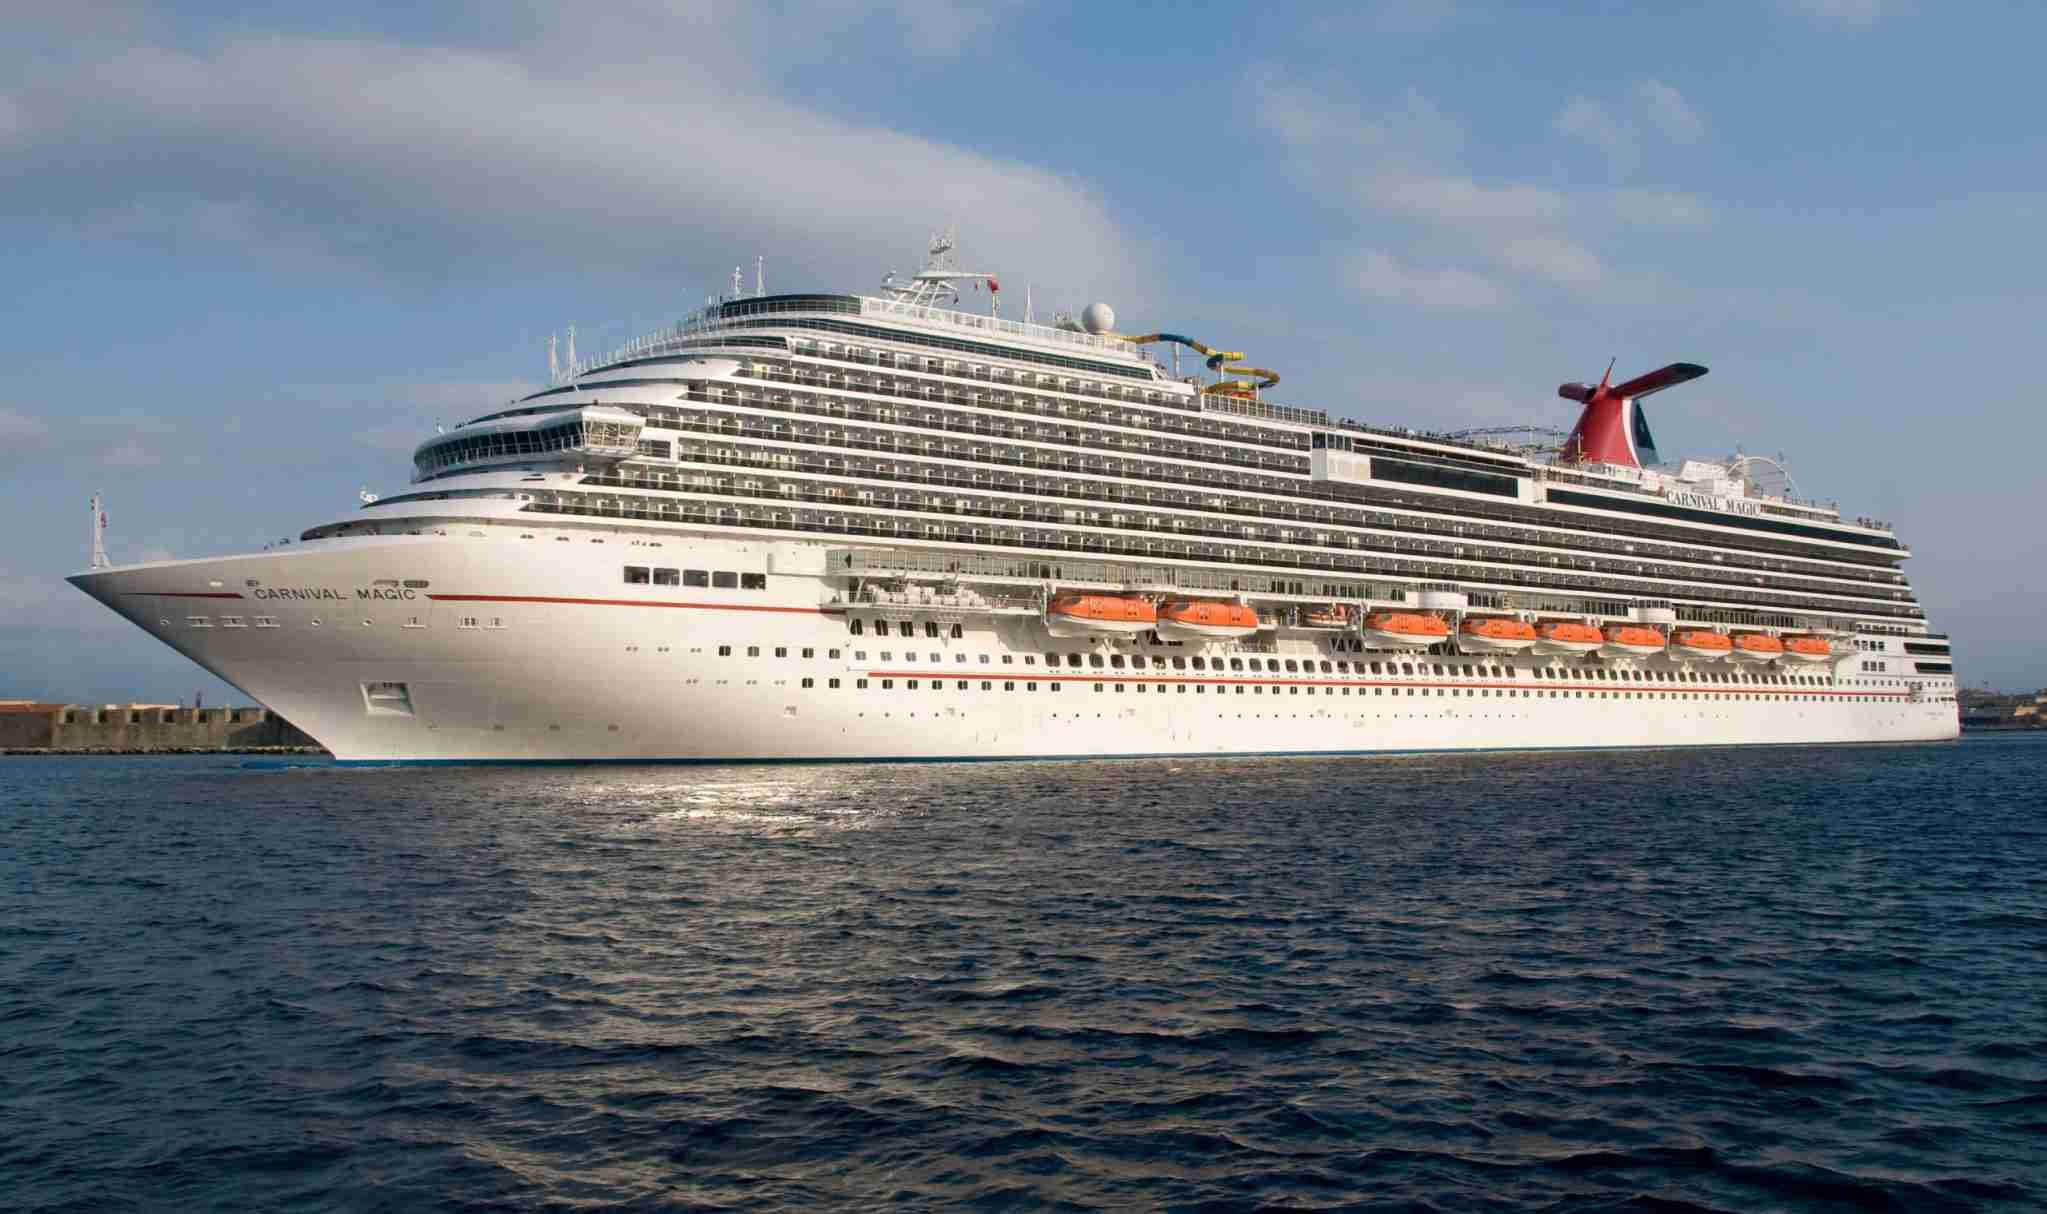 The 3,690-passenger Carnival Magic. Photo courtesy of Andy Newman/Carnival Cruise Lines